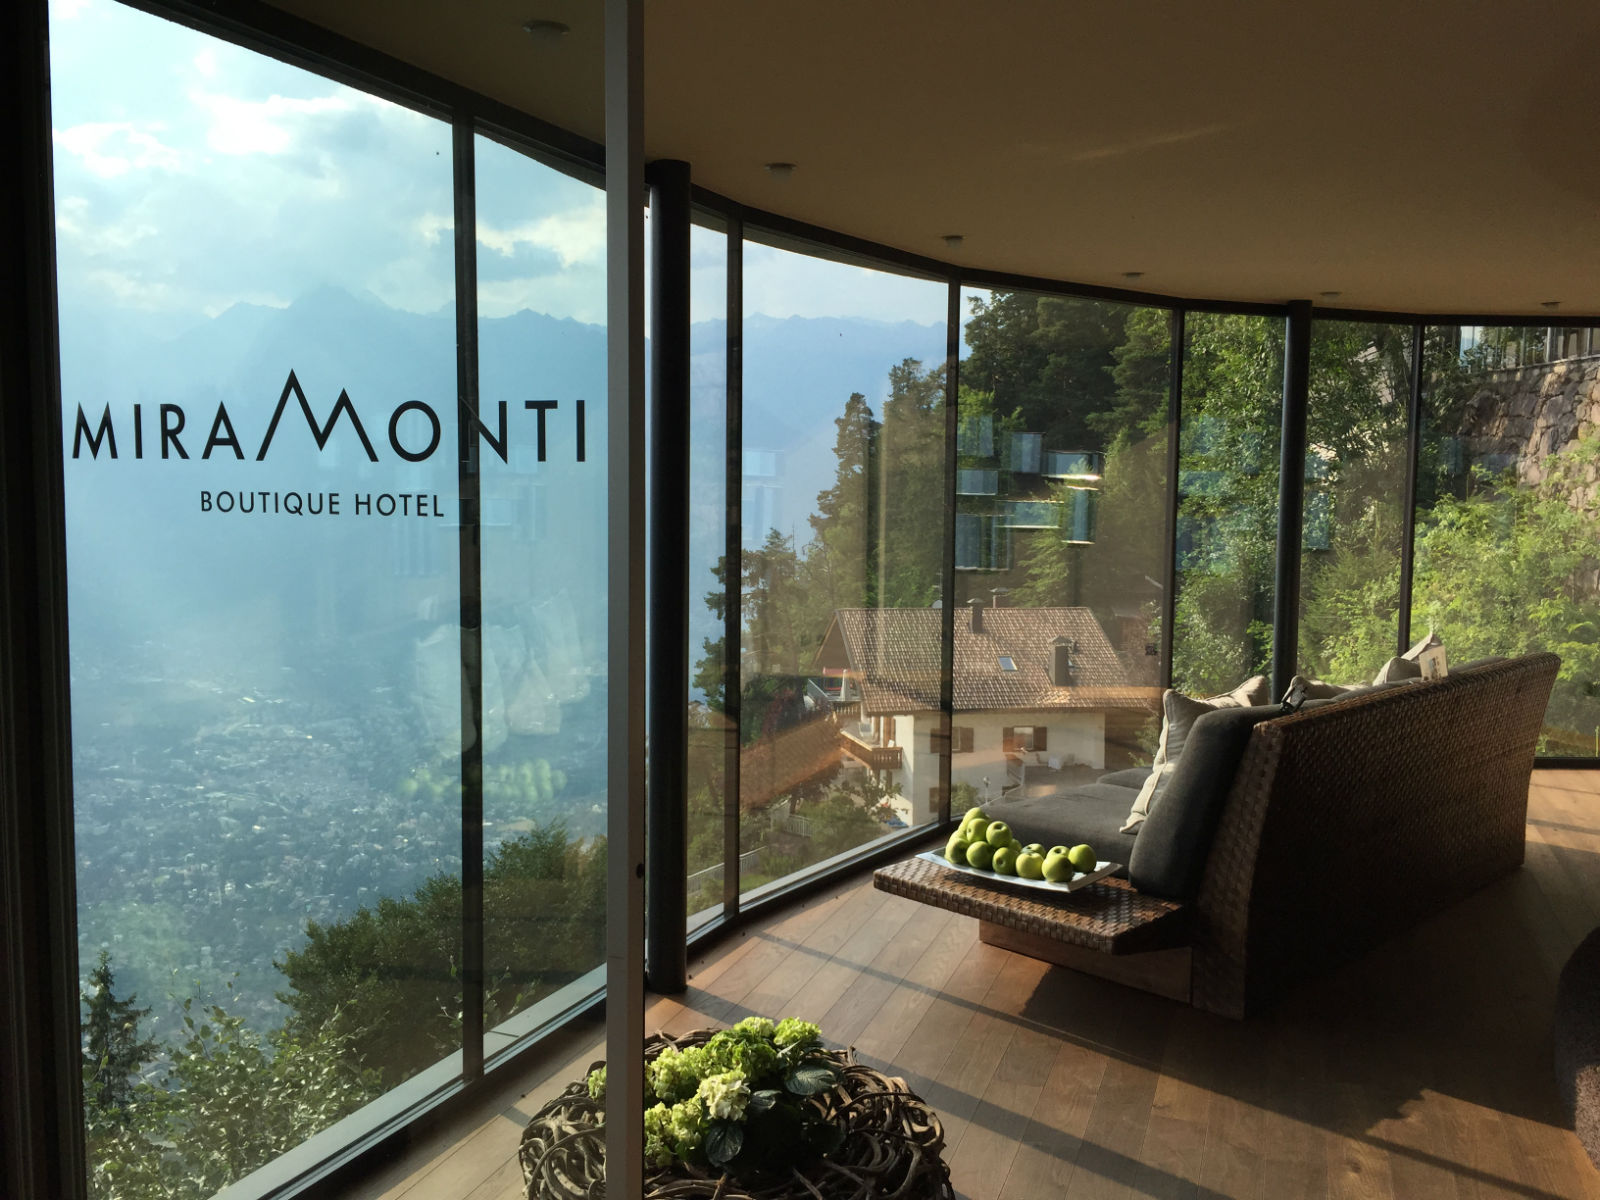 Miramonti boutique hotel in s dtirol hotelreview for Boutique hotel definizione